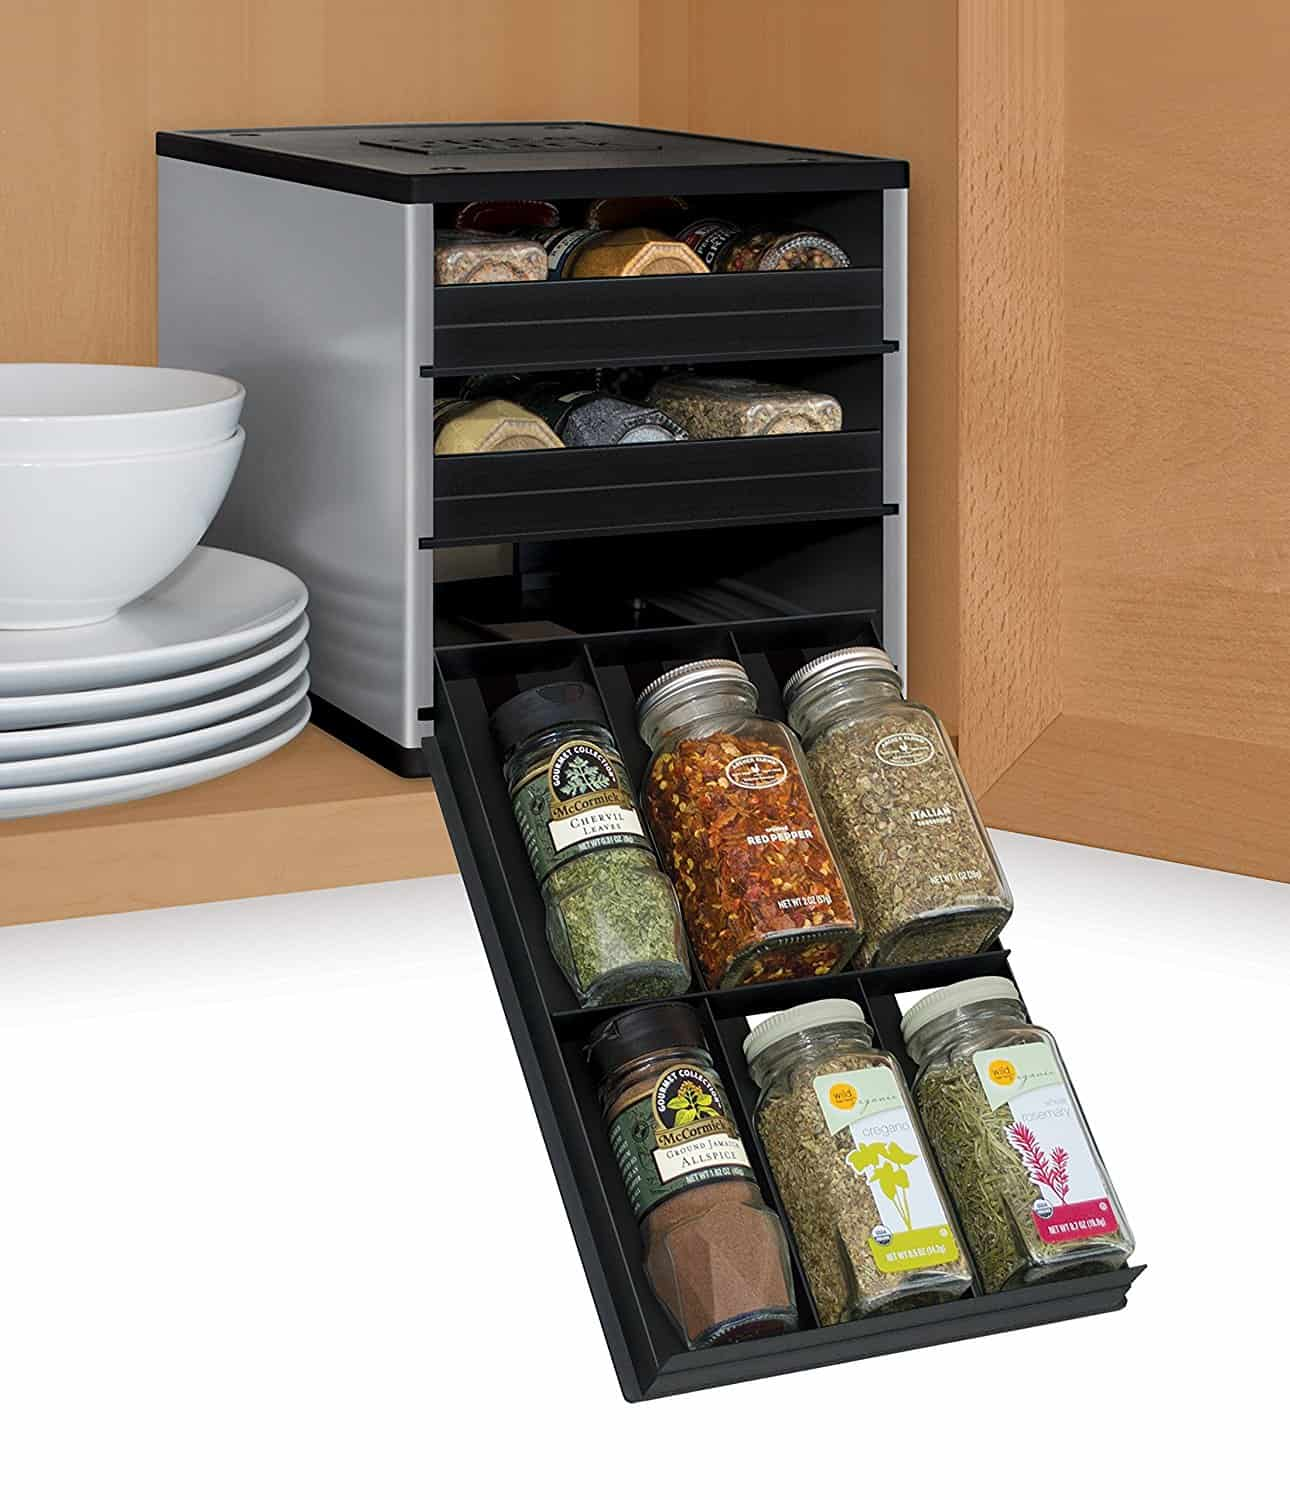 SpiceStack Bottle Organizer